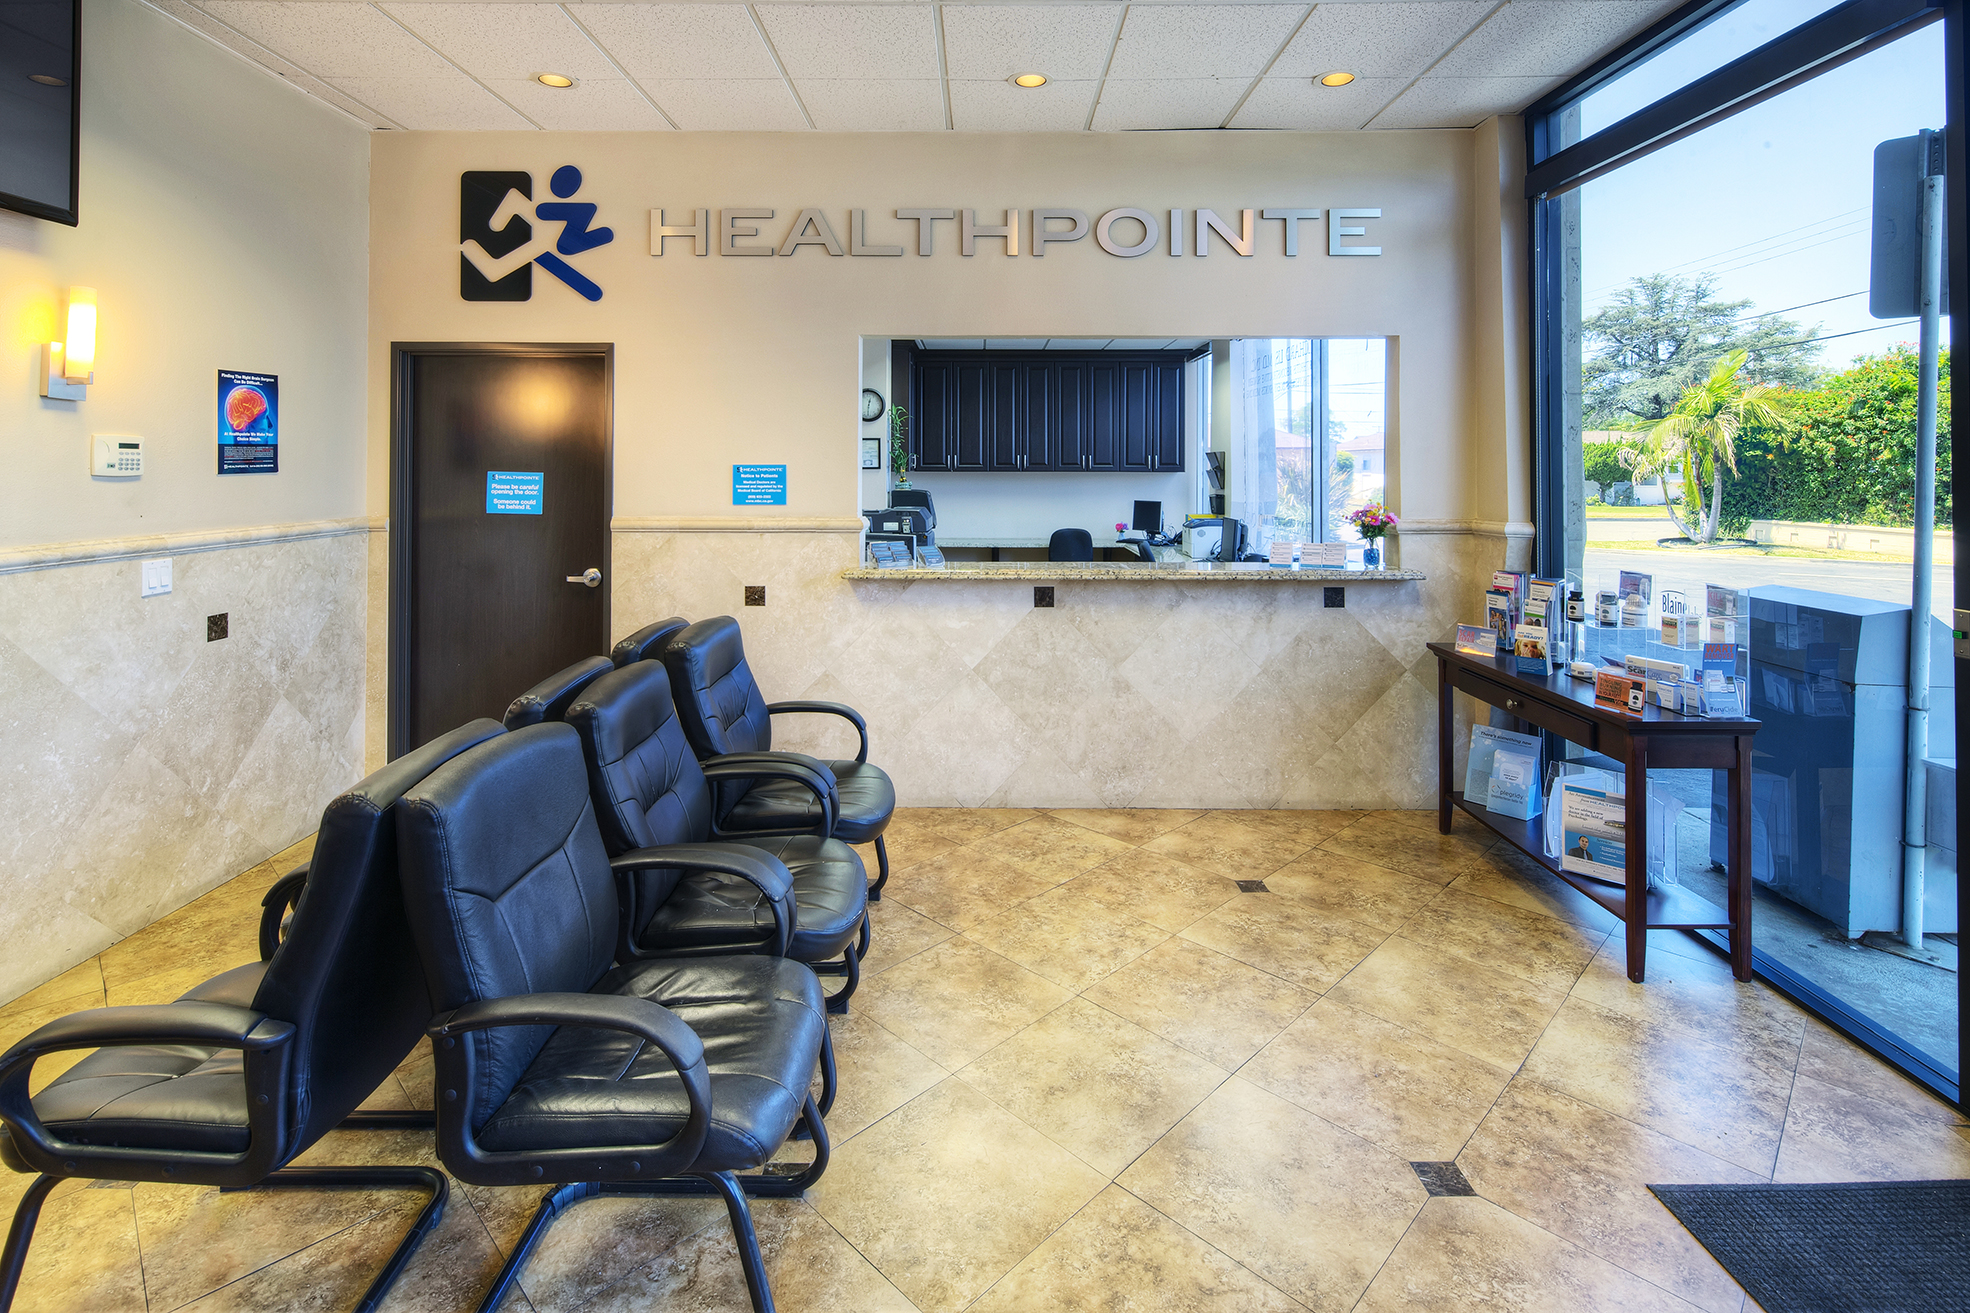 The Covid Recovery Program at Healthpointe in Anaheim